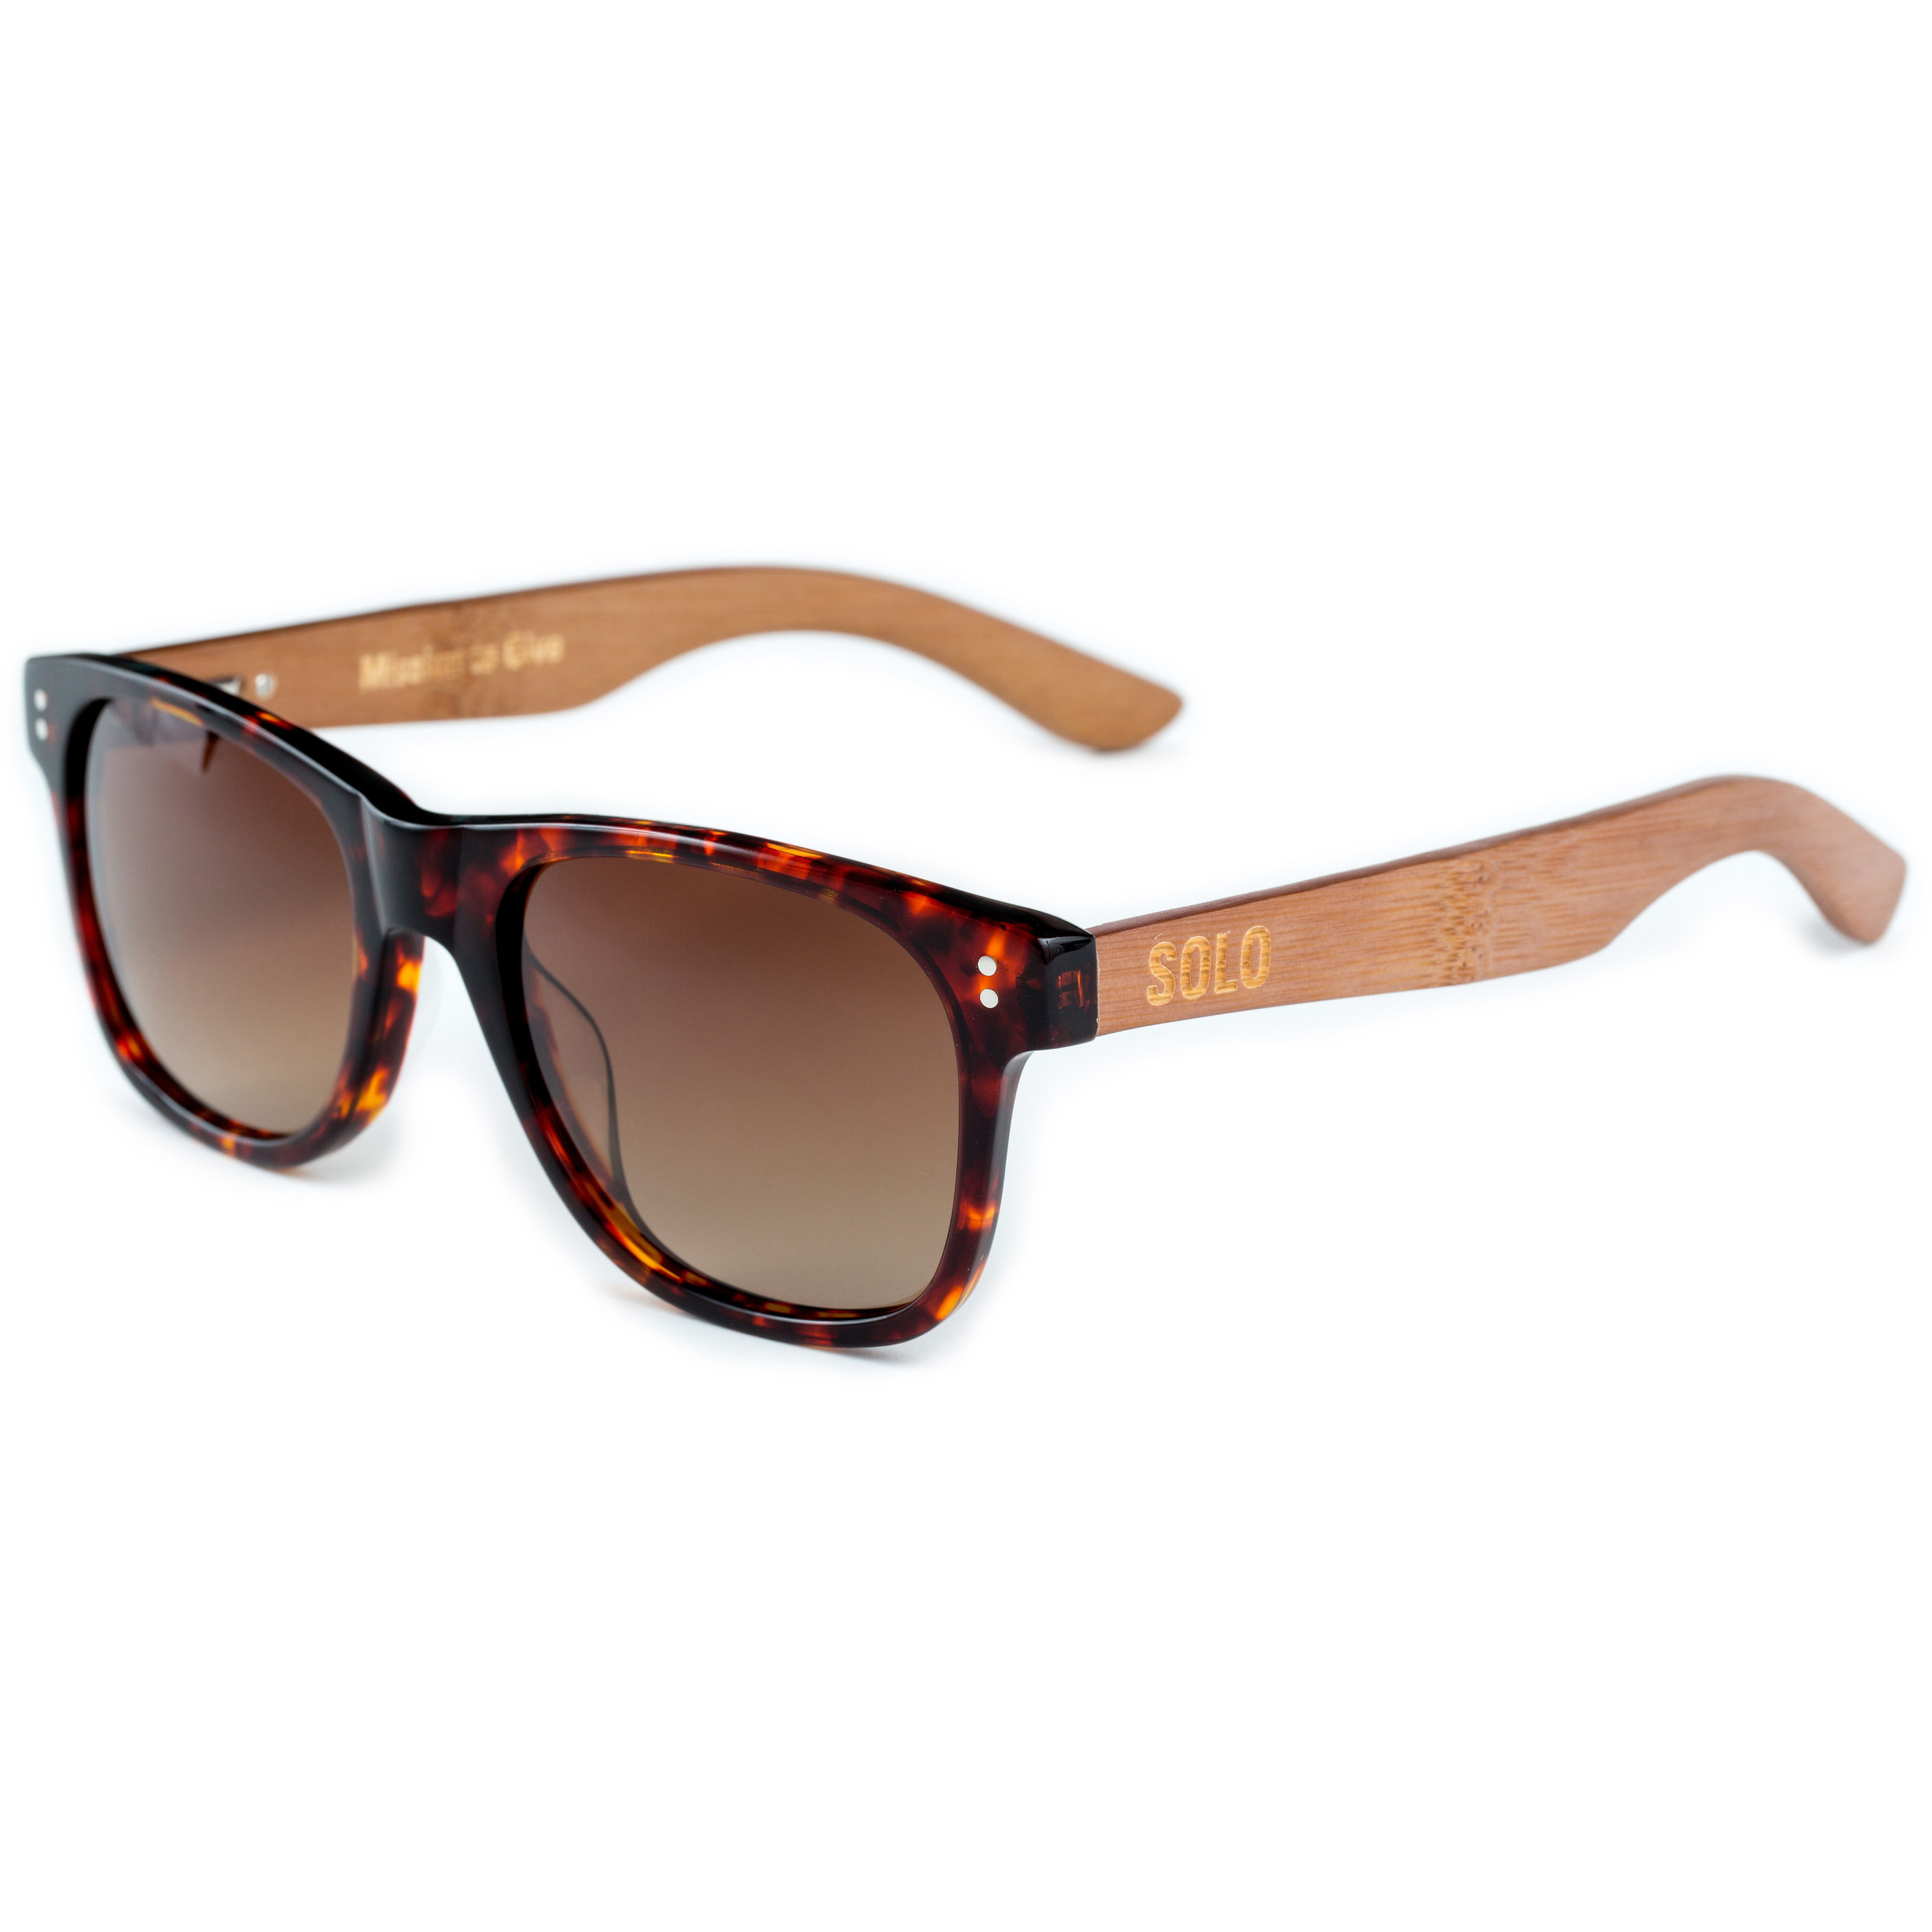 EarthHero - Fiji Polarized Sunglasses 1